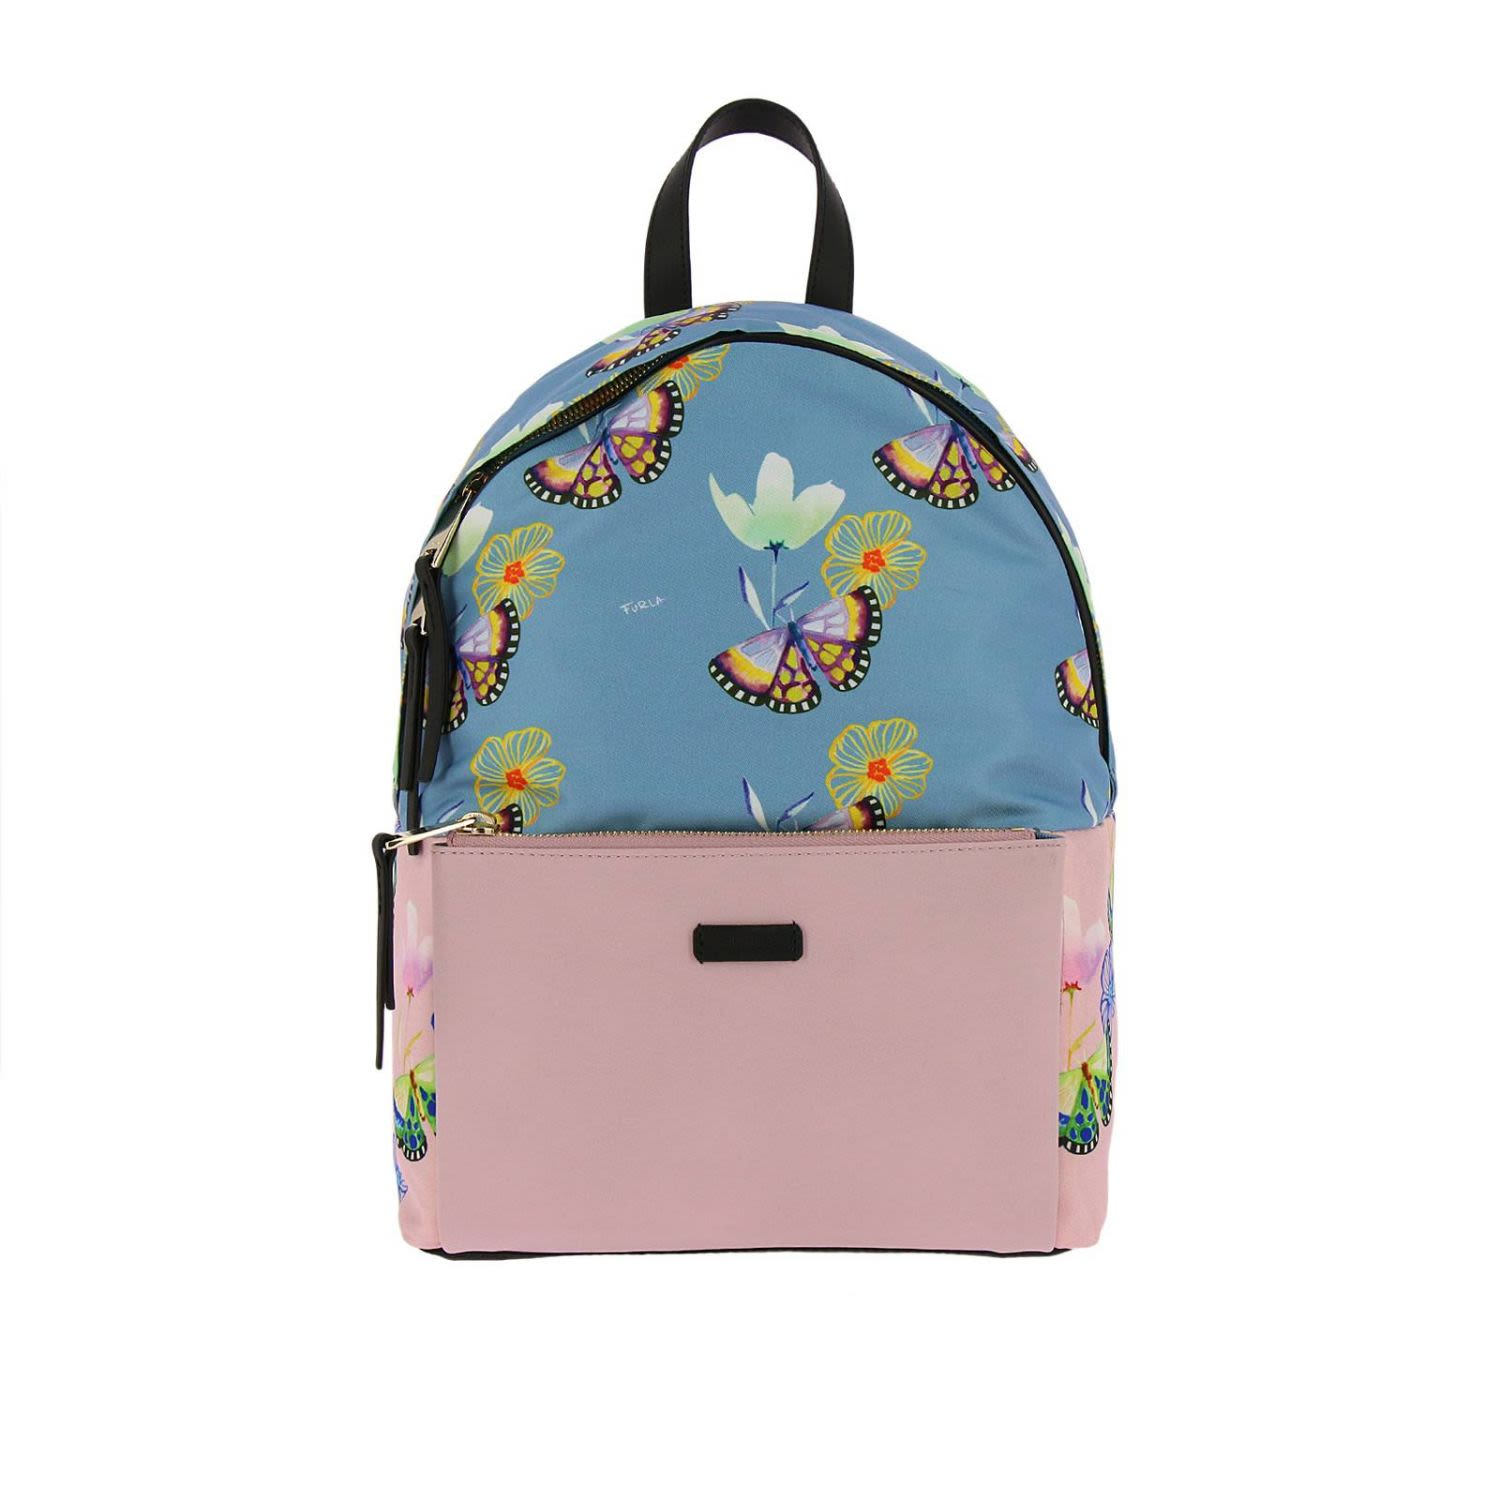 Giudecca Small Floral Print Backpack in Pink